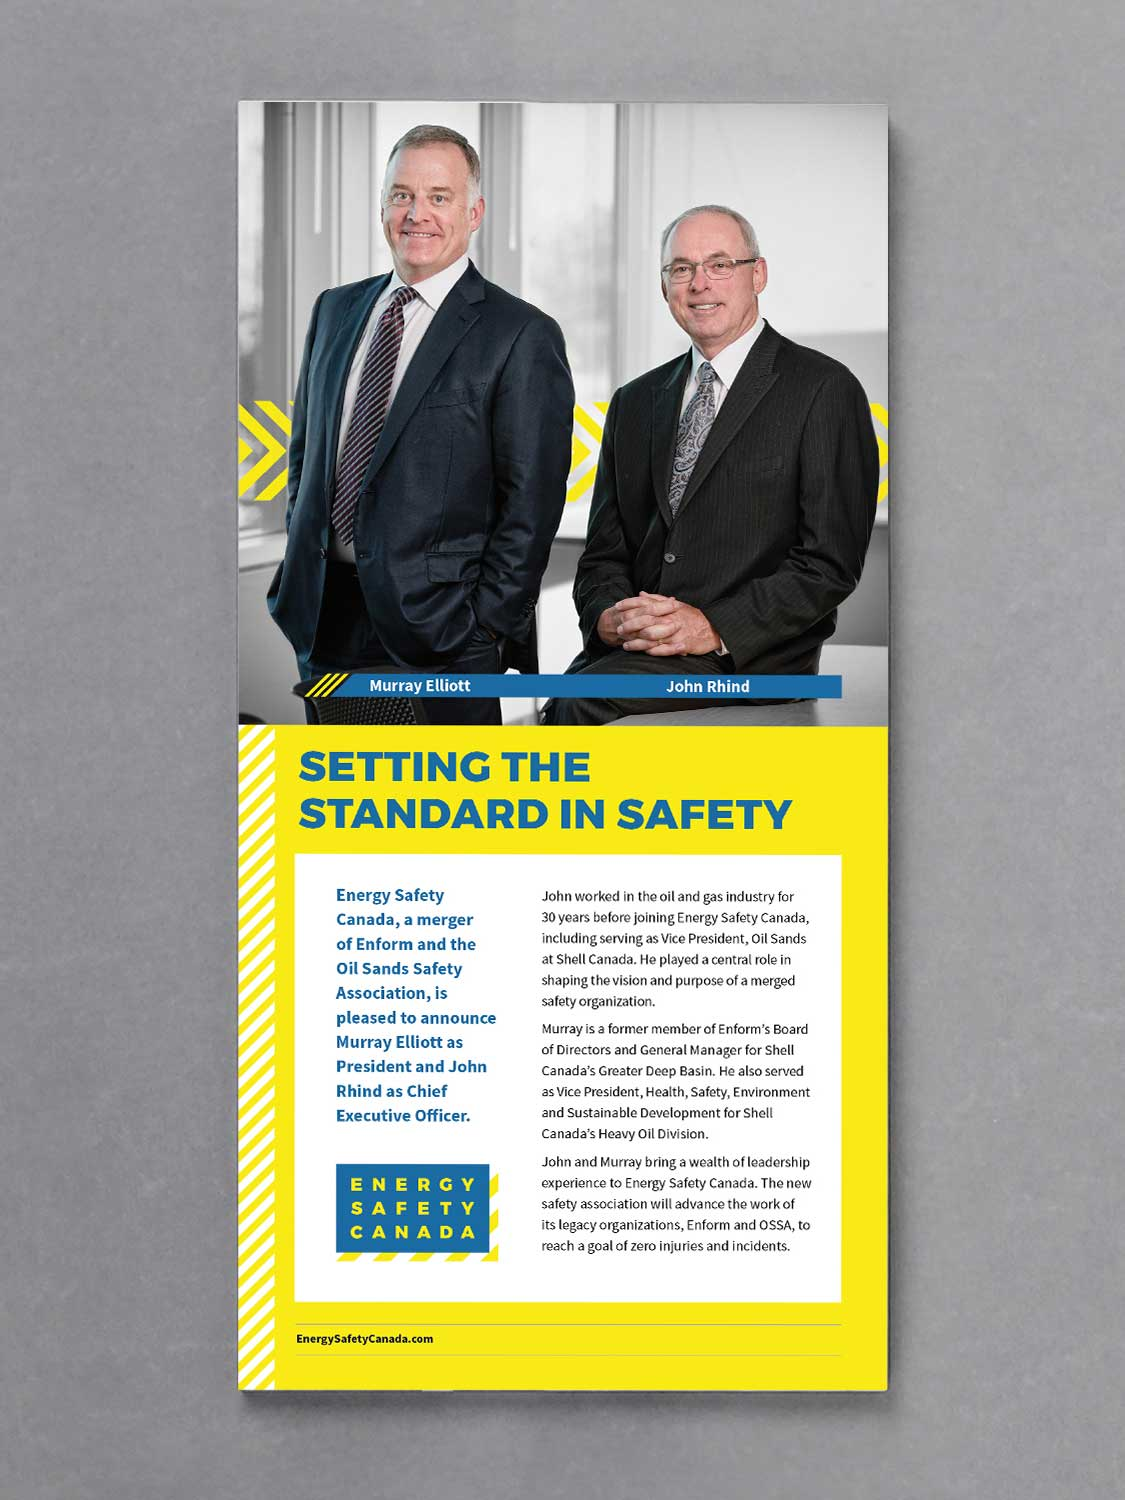 Advertisment featuring murray elliott and john rhind of energy safety canada with the headline setting the standard in safety designed by studio forum